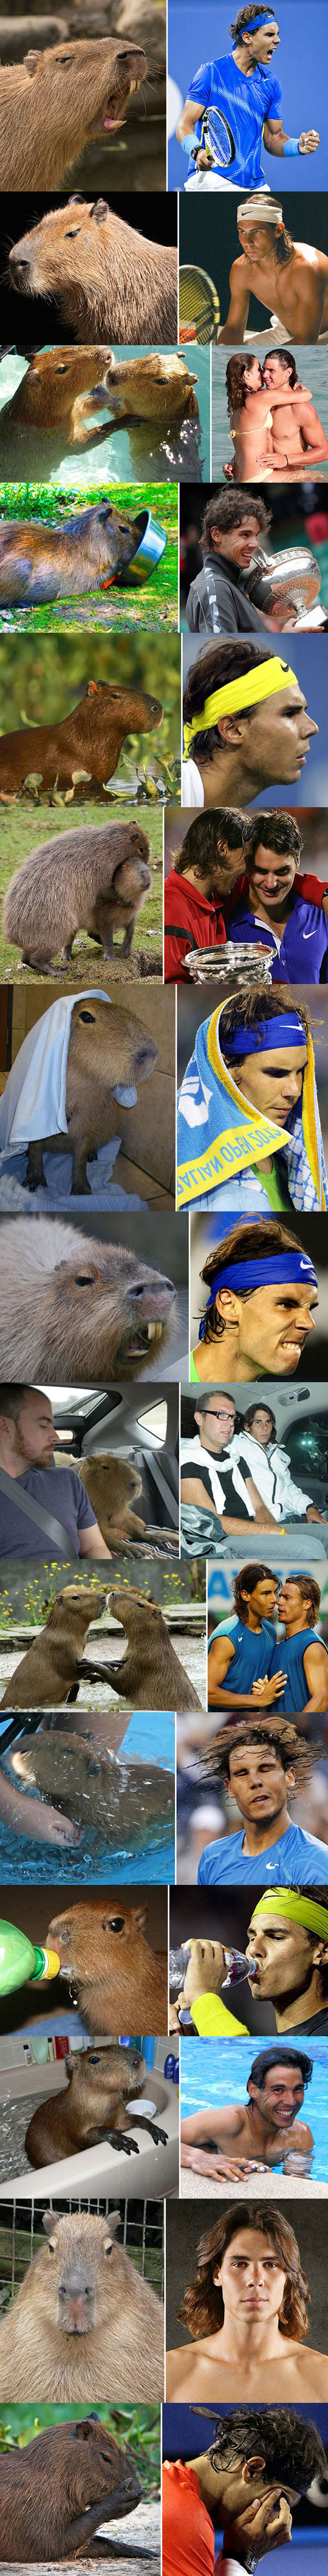 Capybaras That Really Look Like Rafael Nadal